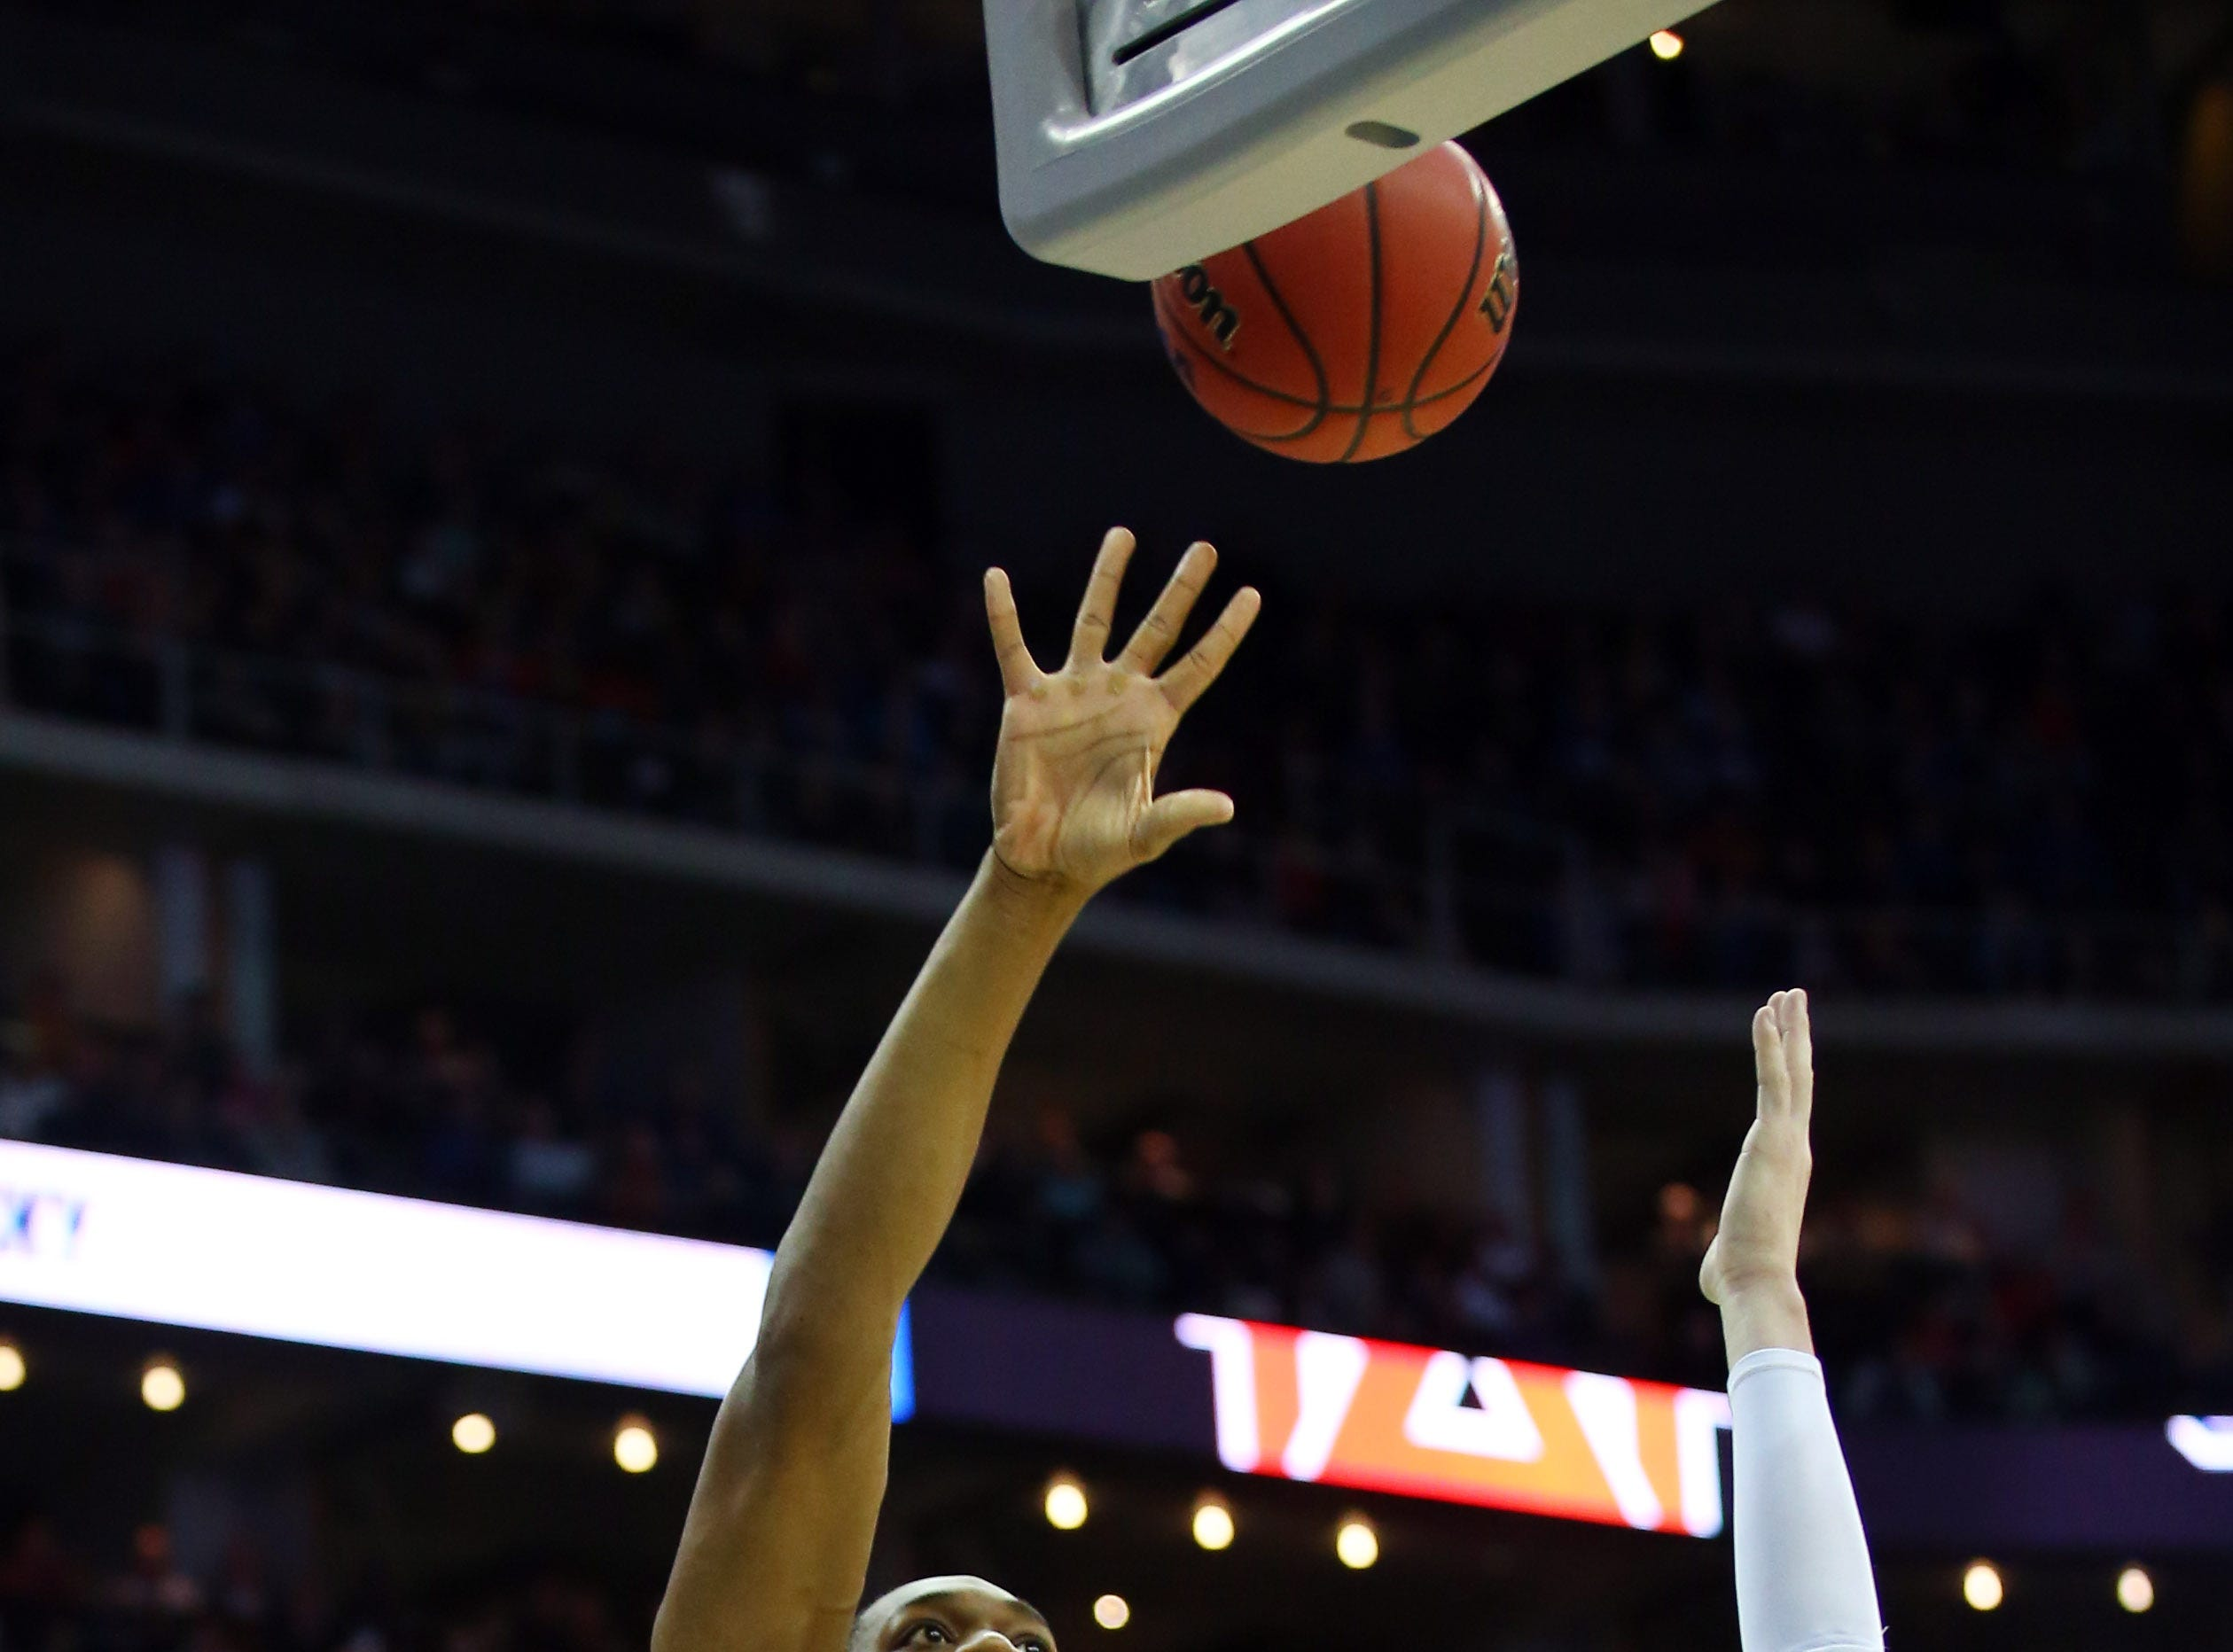 Mar 31, 2019; Kansas City, MO, United States; Auburn Tigers center Austin Wiley (50) shoots over Kentucky Wildcats guard Tyler Herro (14) during the first half in the championship game of the midwest regional of the 2019 NCAA Tournament at Sprint Center. Mandatory Credit: Jay Biggerstaff-USA TODAY Sports